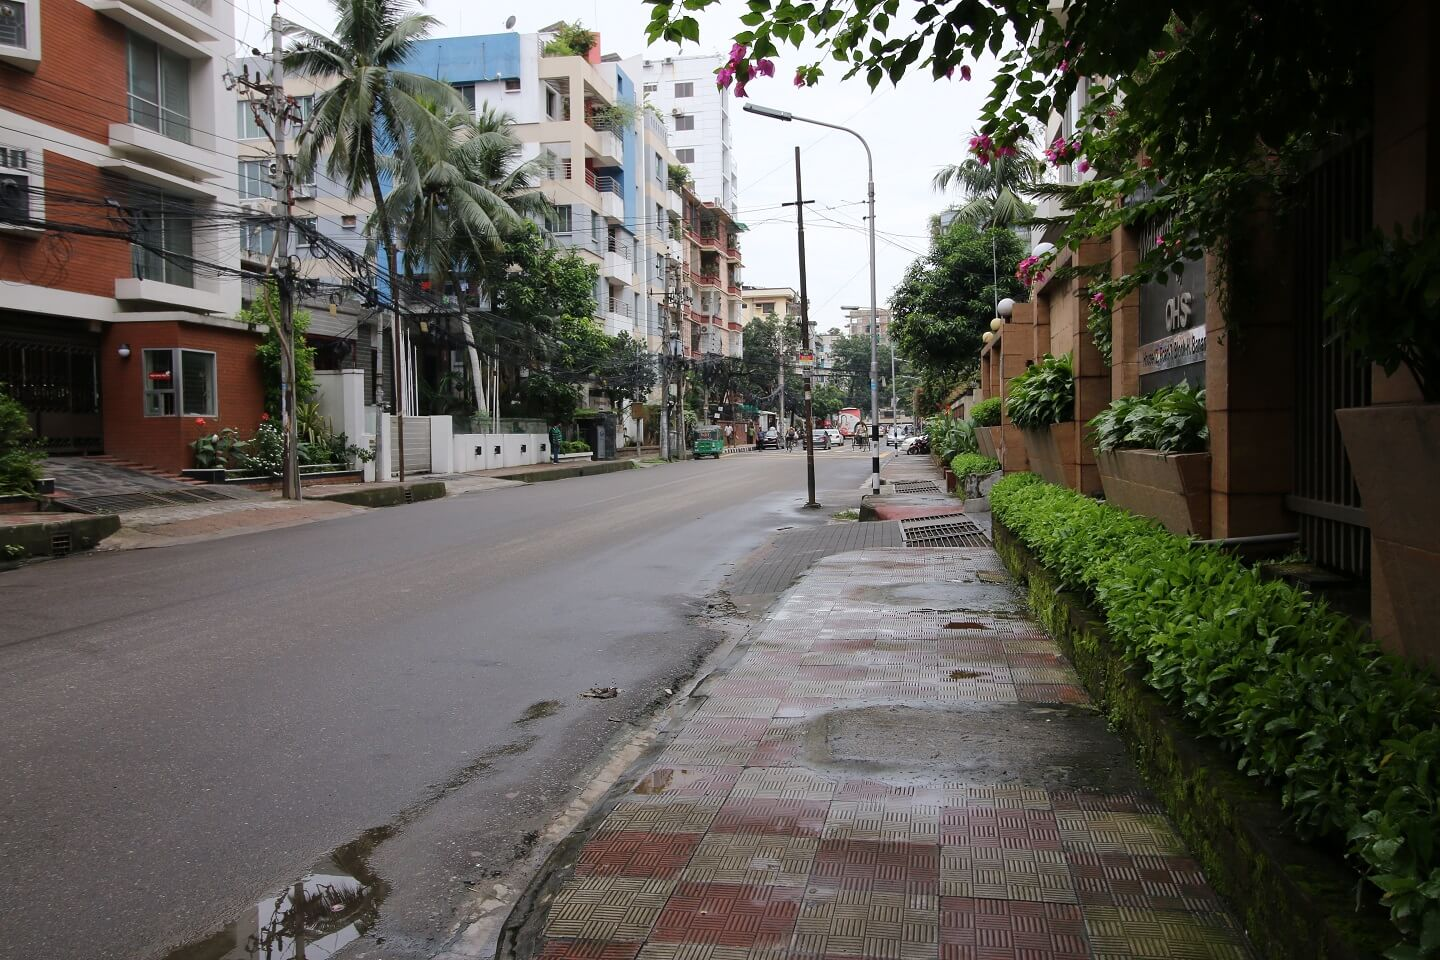 Even though Banani has a casual vibe to it, expats easily fit in the area